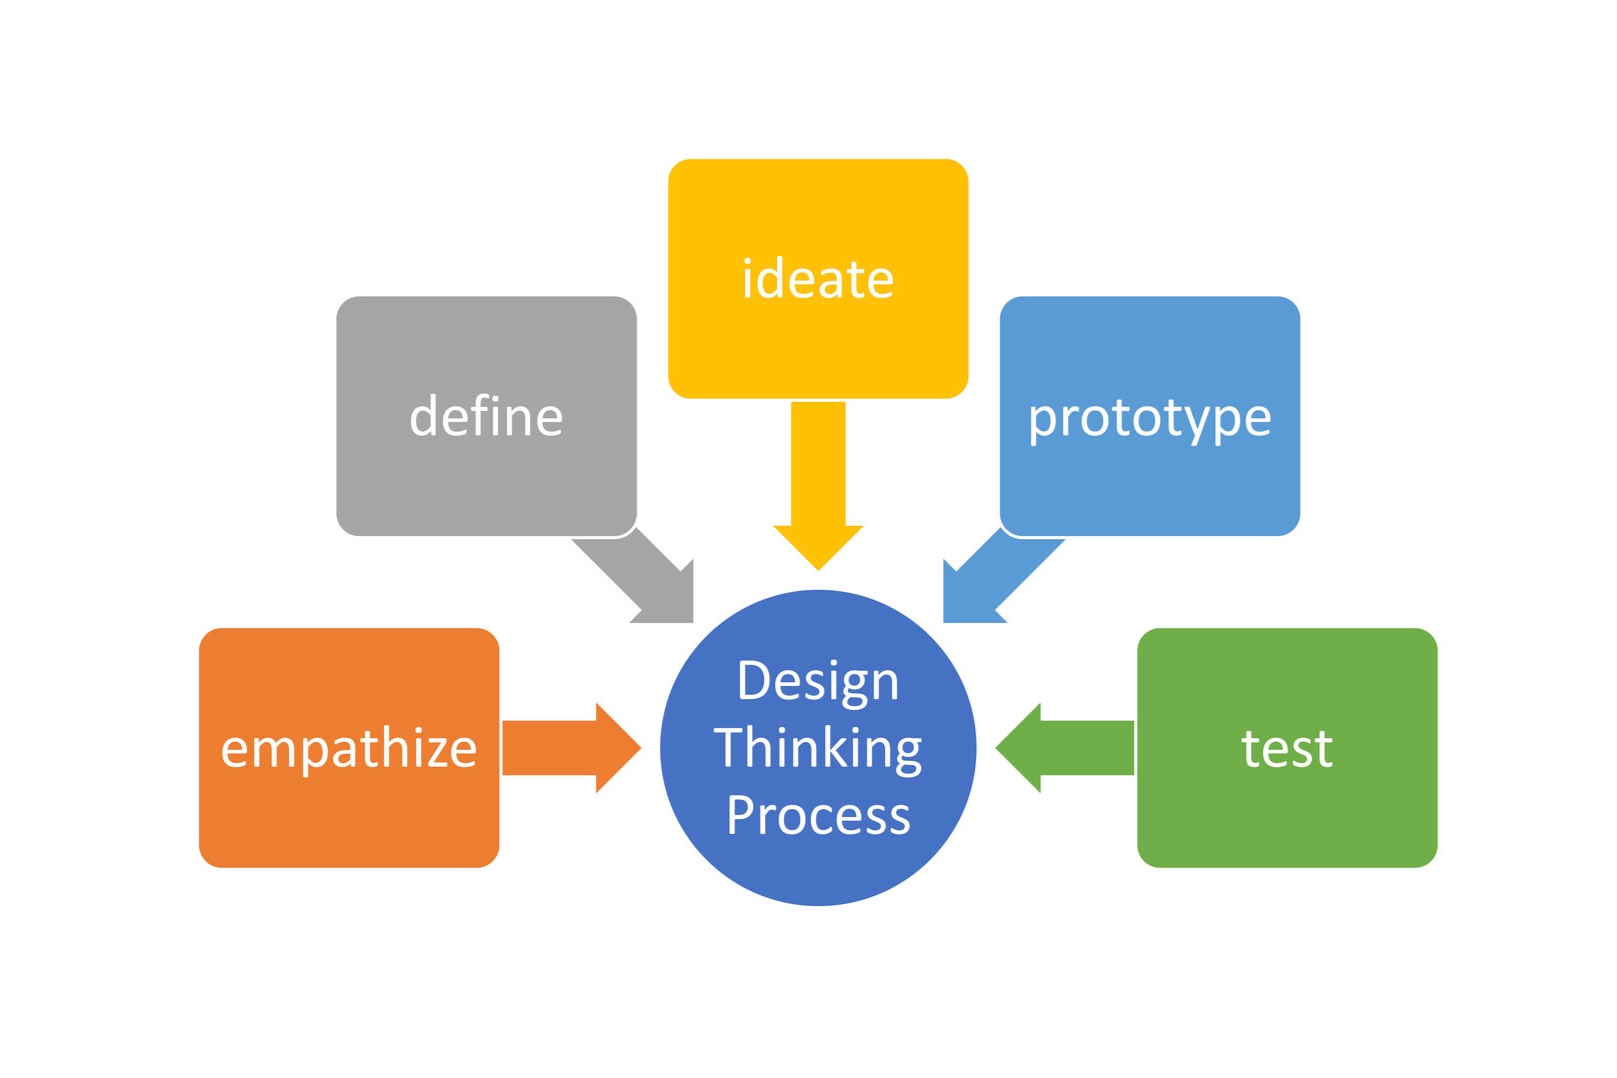 JPGWhy+design+thinking+important+to+us.jpg